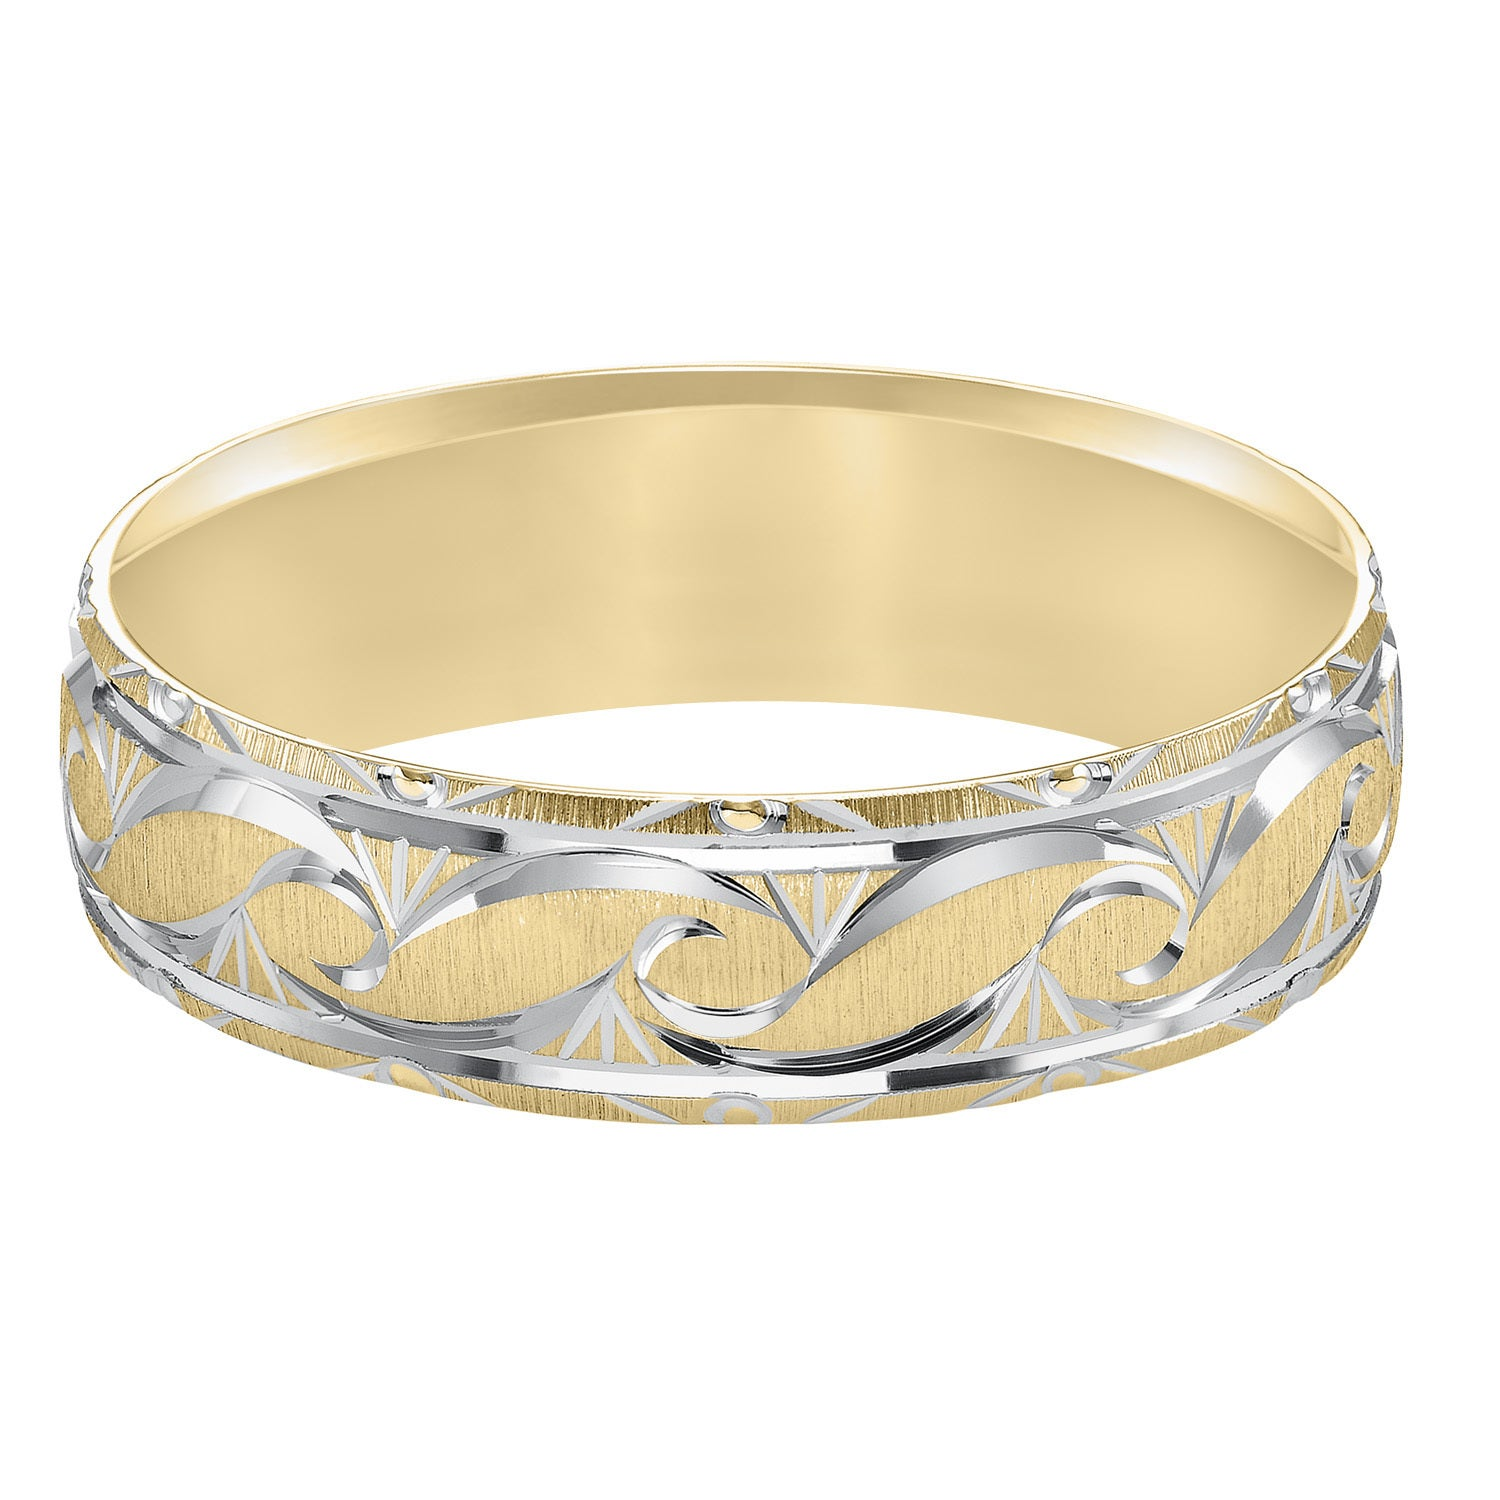 Shop Cambridge 14k Yellow Gold Men's Wedding Band On Sale Free Shipping Today Overstock 16681609: Yellow Gold Wedding Bands At Websimilar.org